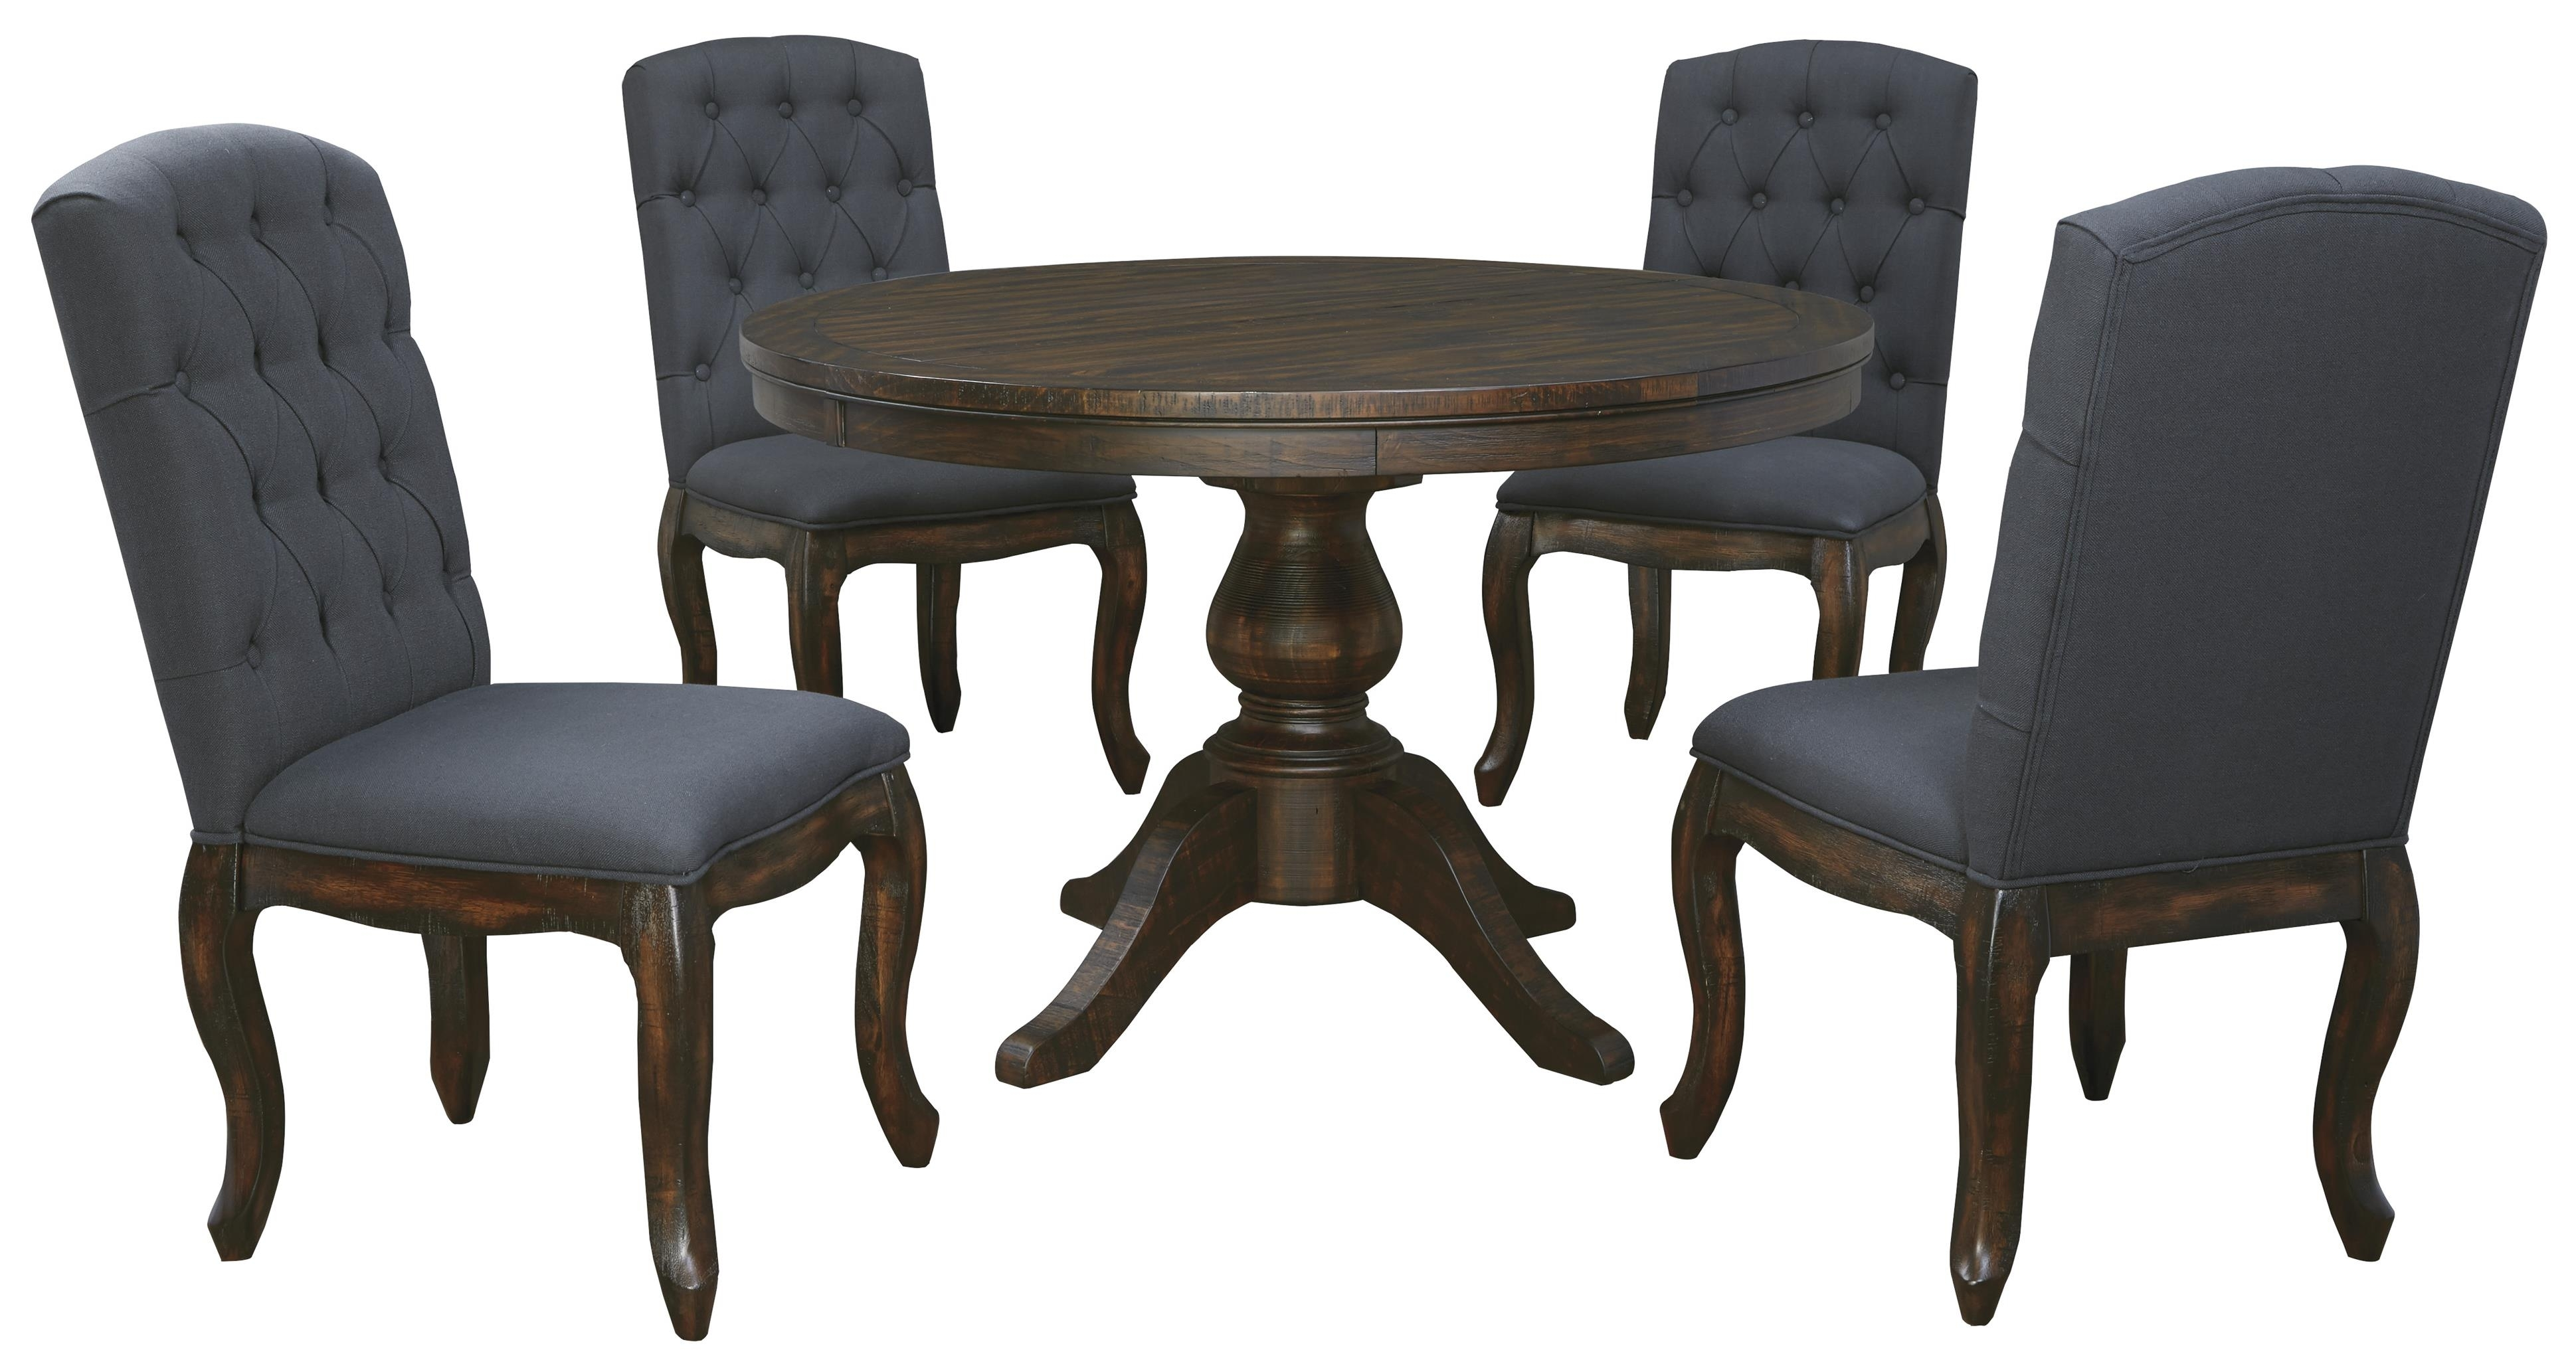 5 Piece Round Dining Table Set – Castrophotos Within Most Popular Macie 5 Piece Round Dining Sets (Image 3 of 20)